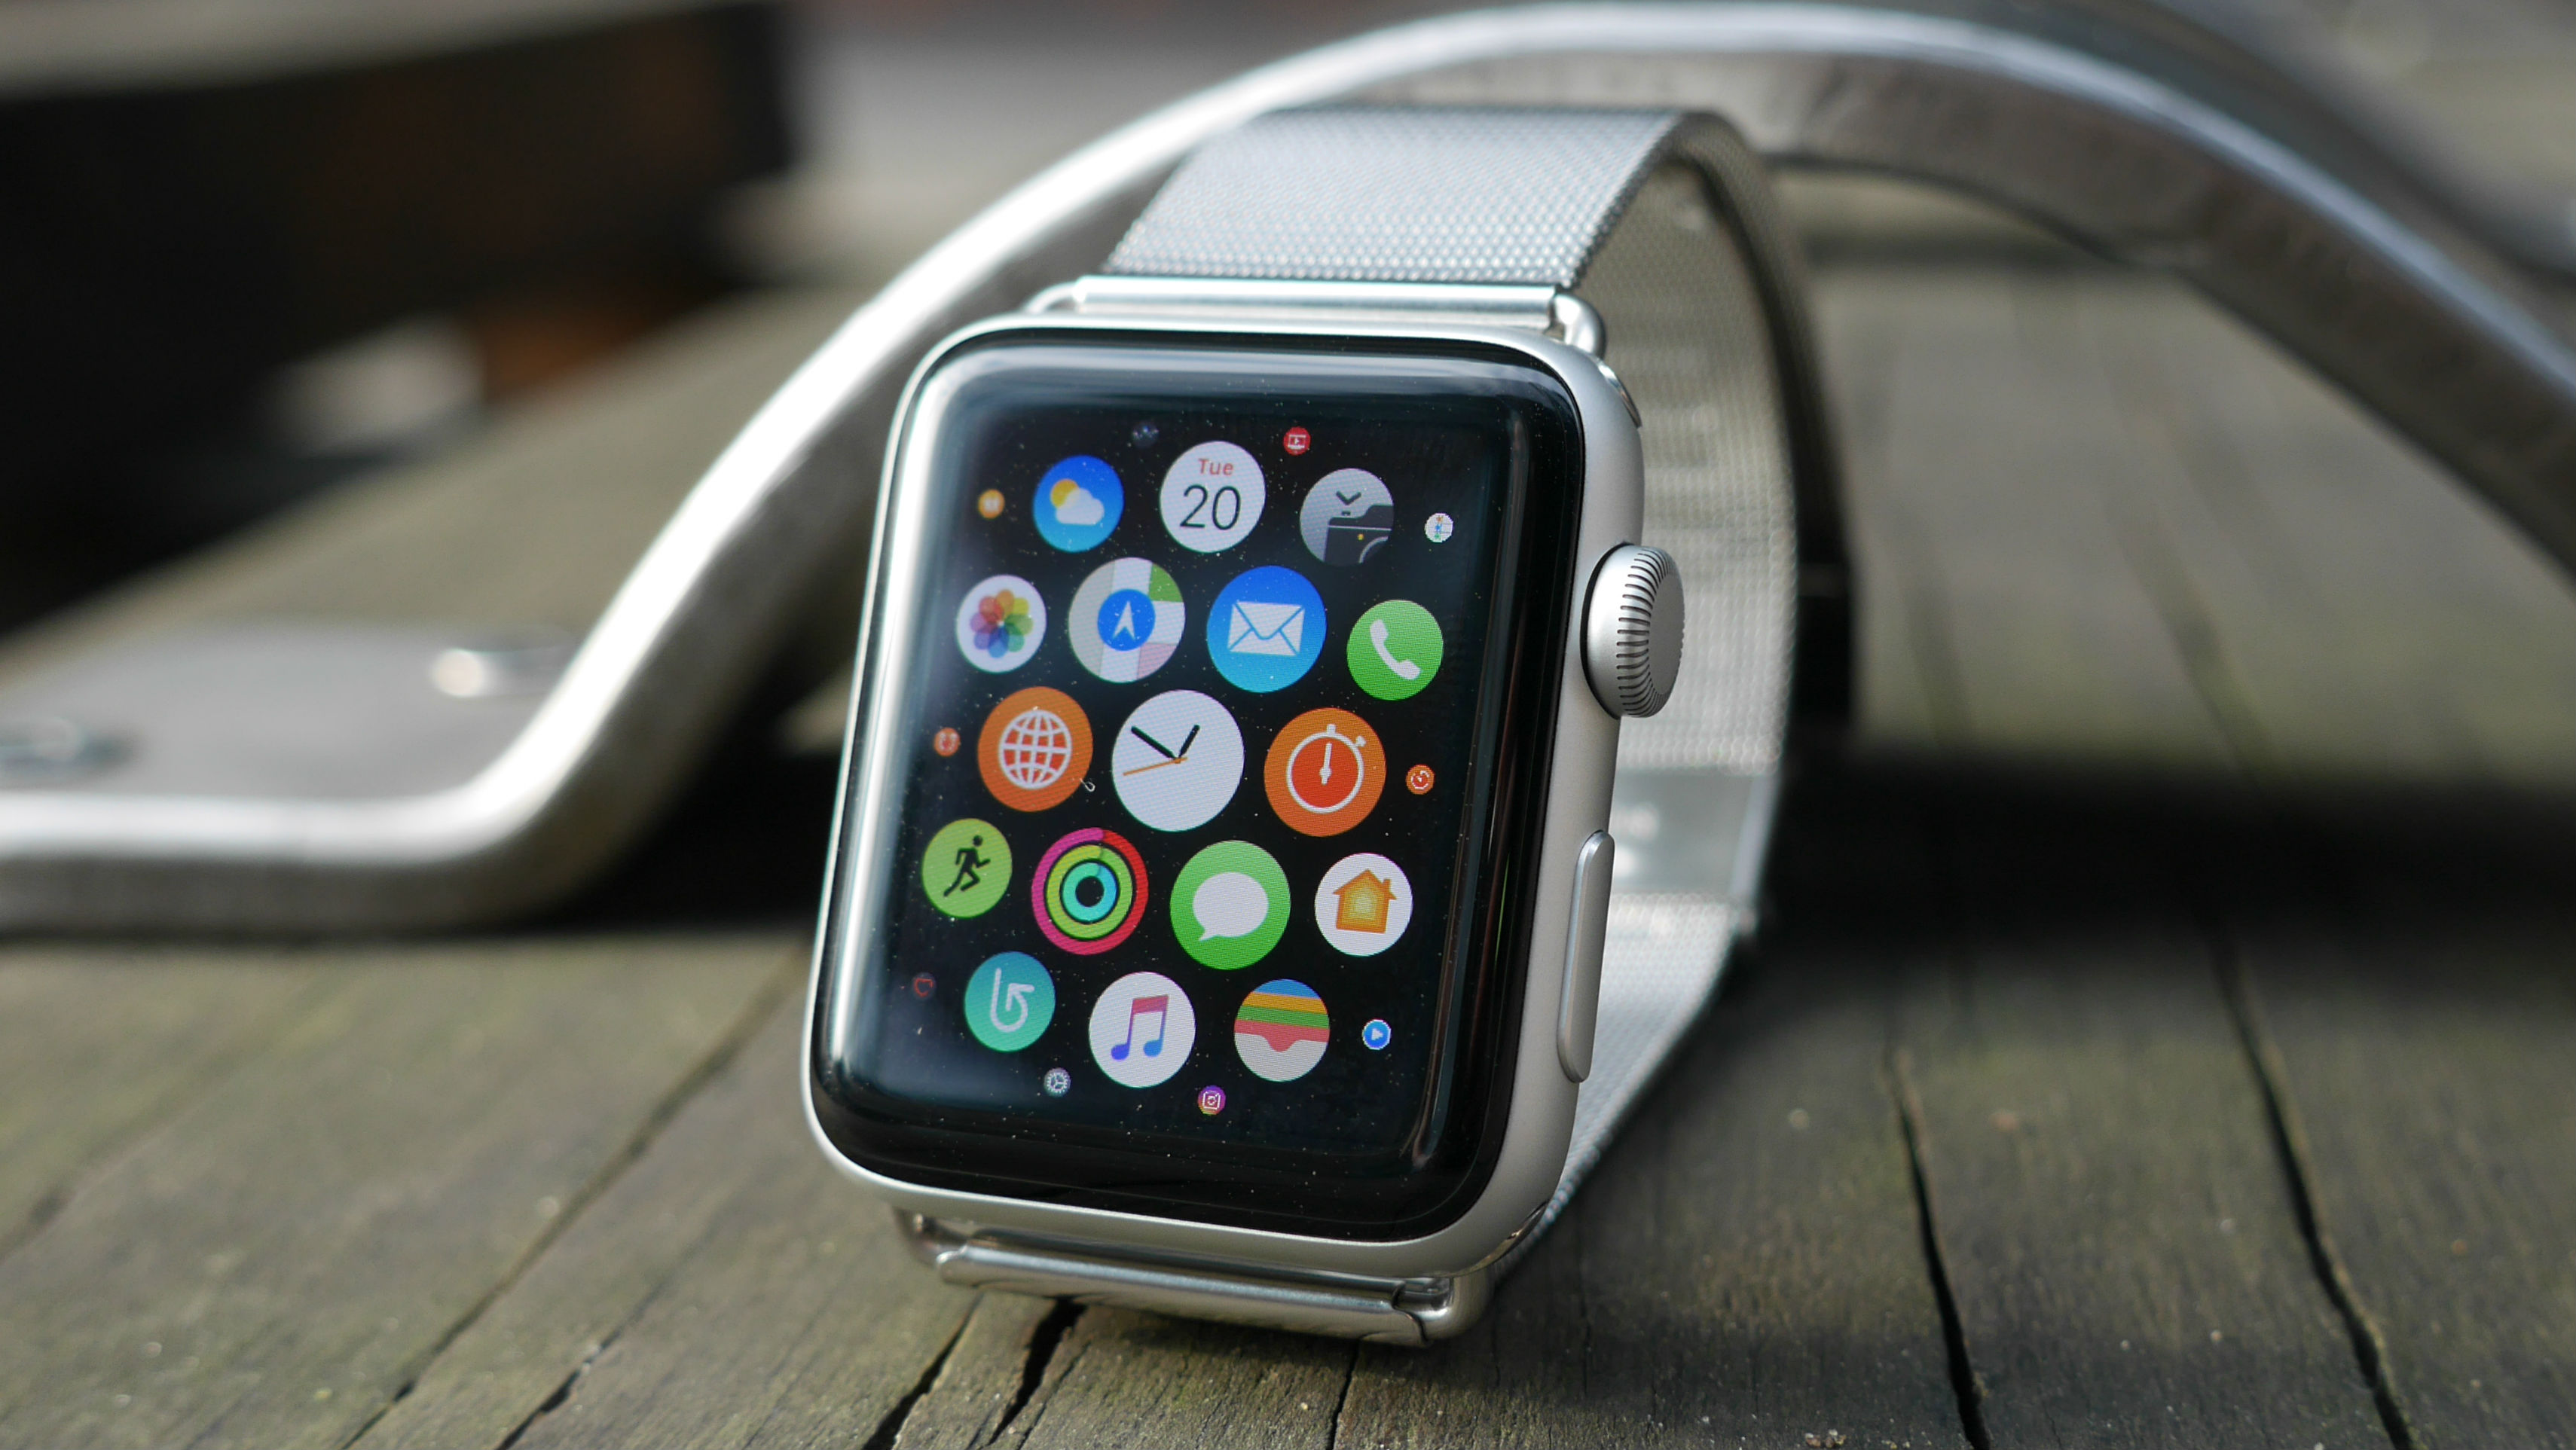 Here's more evidence the Apple Watch 3 could launch later this year